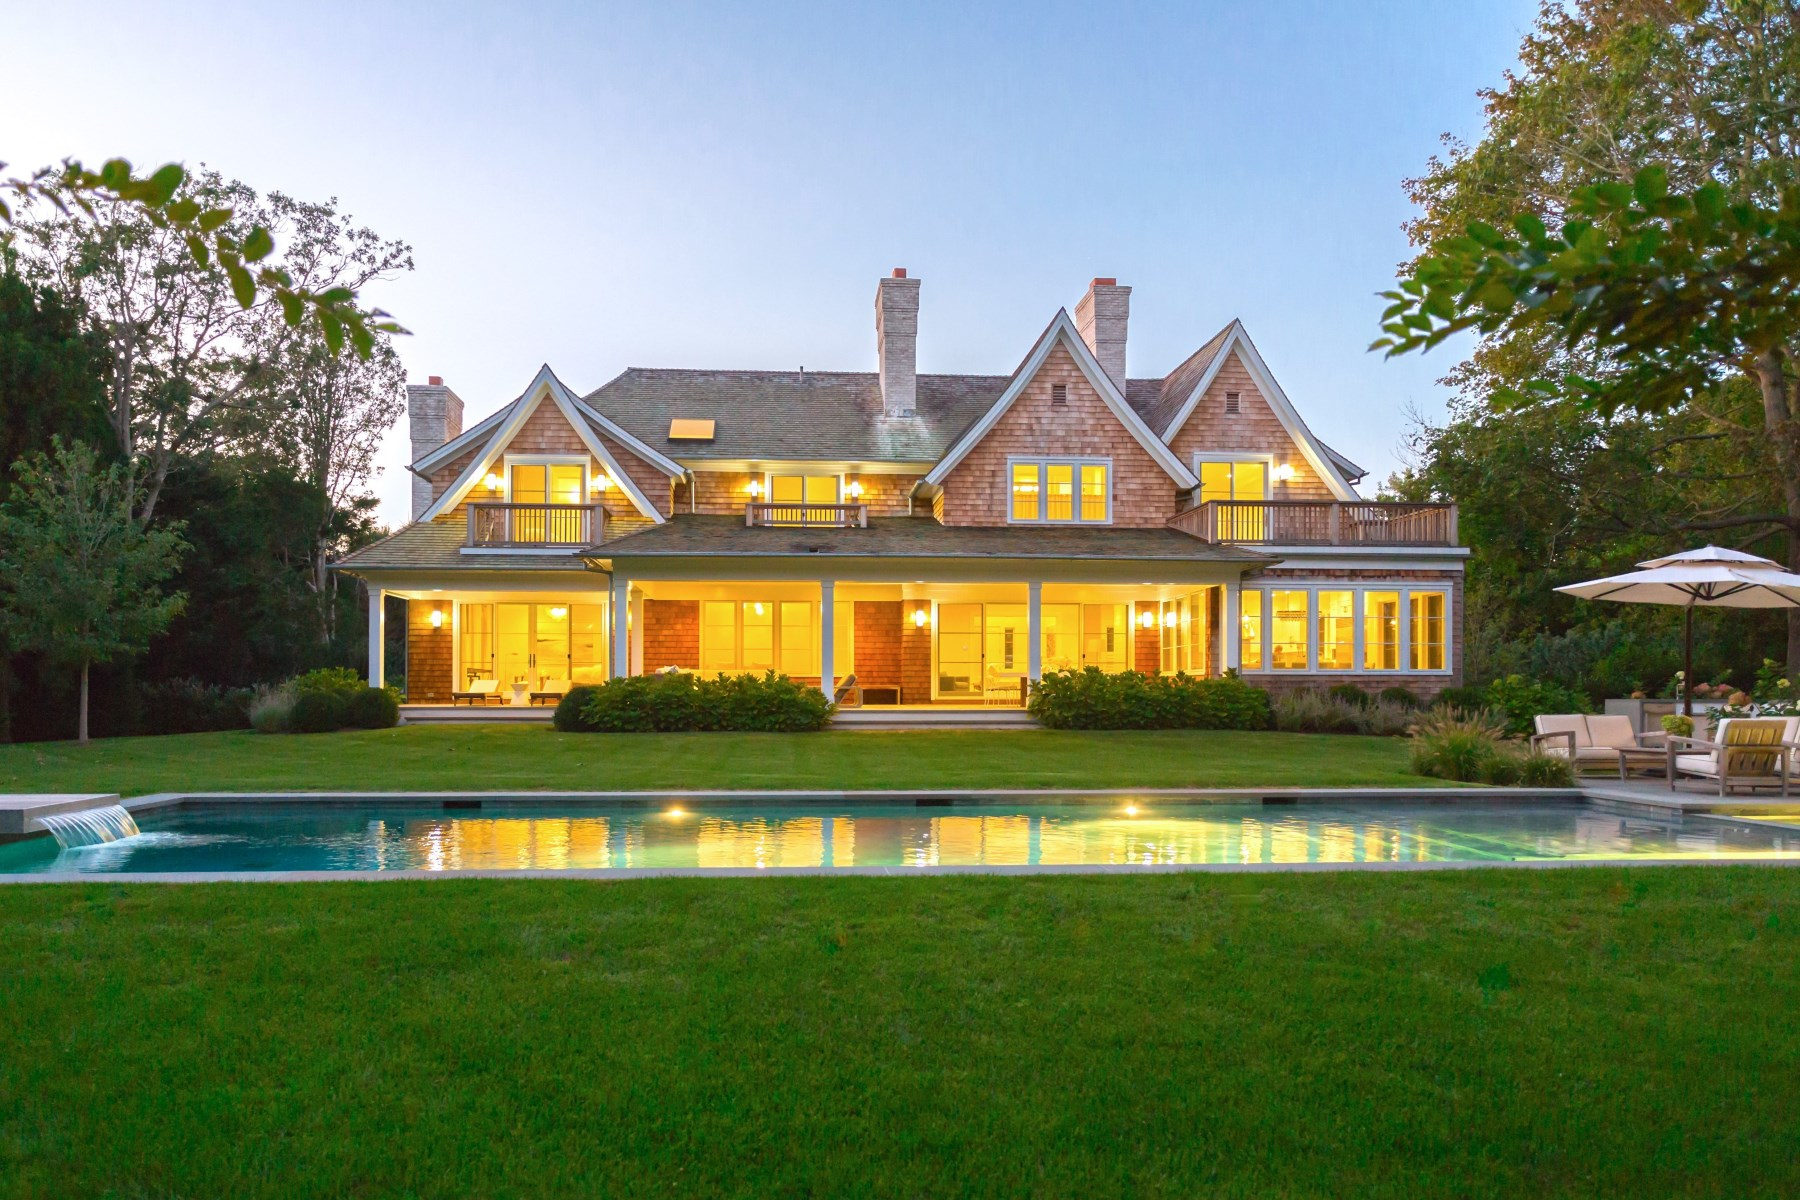 Vivienda unifamiliar por un Venta en Georgica Designer's Own New Construction 200 Georgica Road, East Hampton, Nueva York, 11937 Estados Unidos